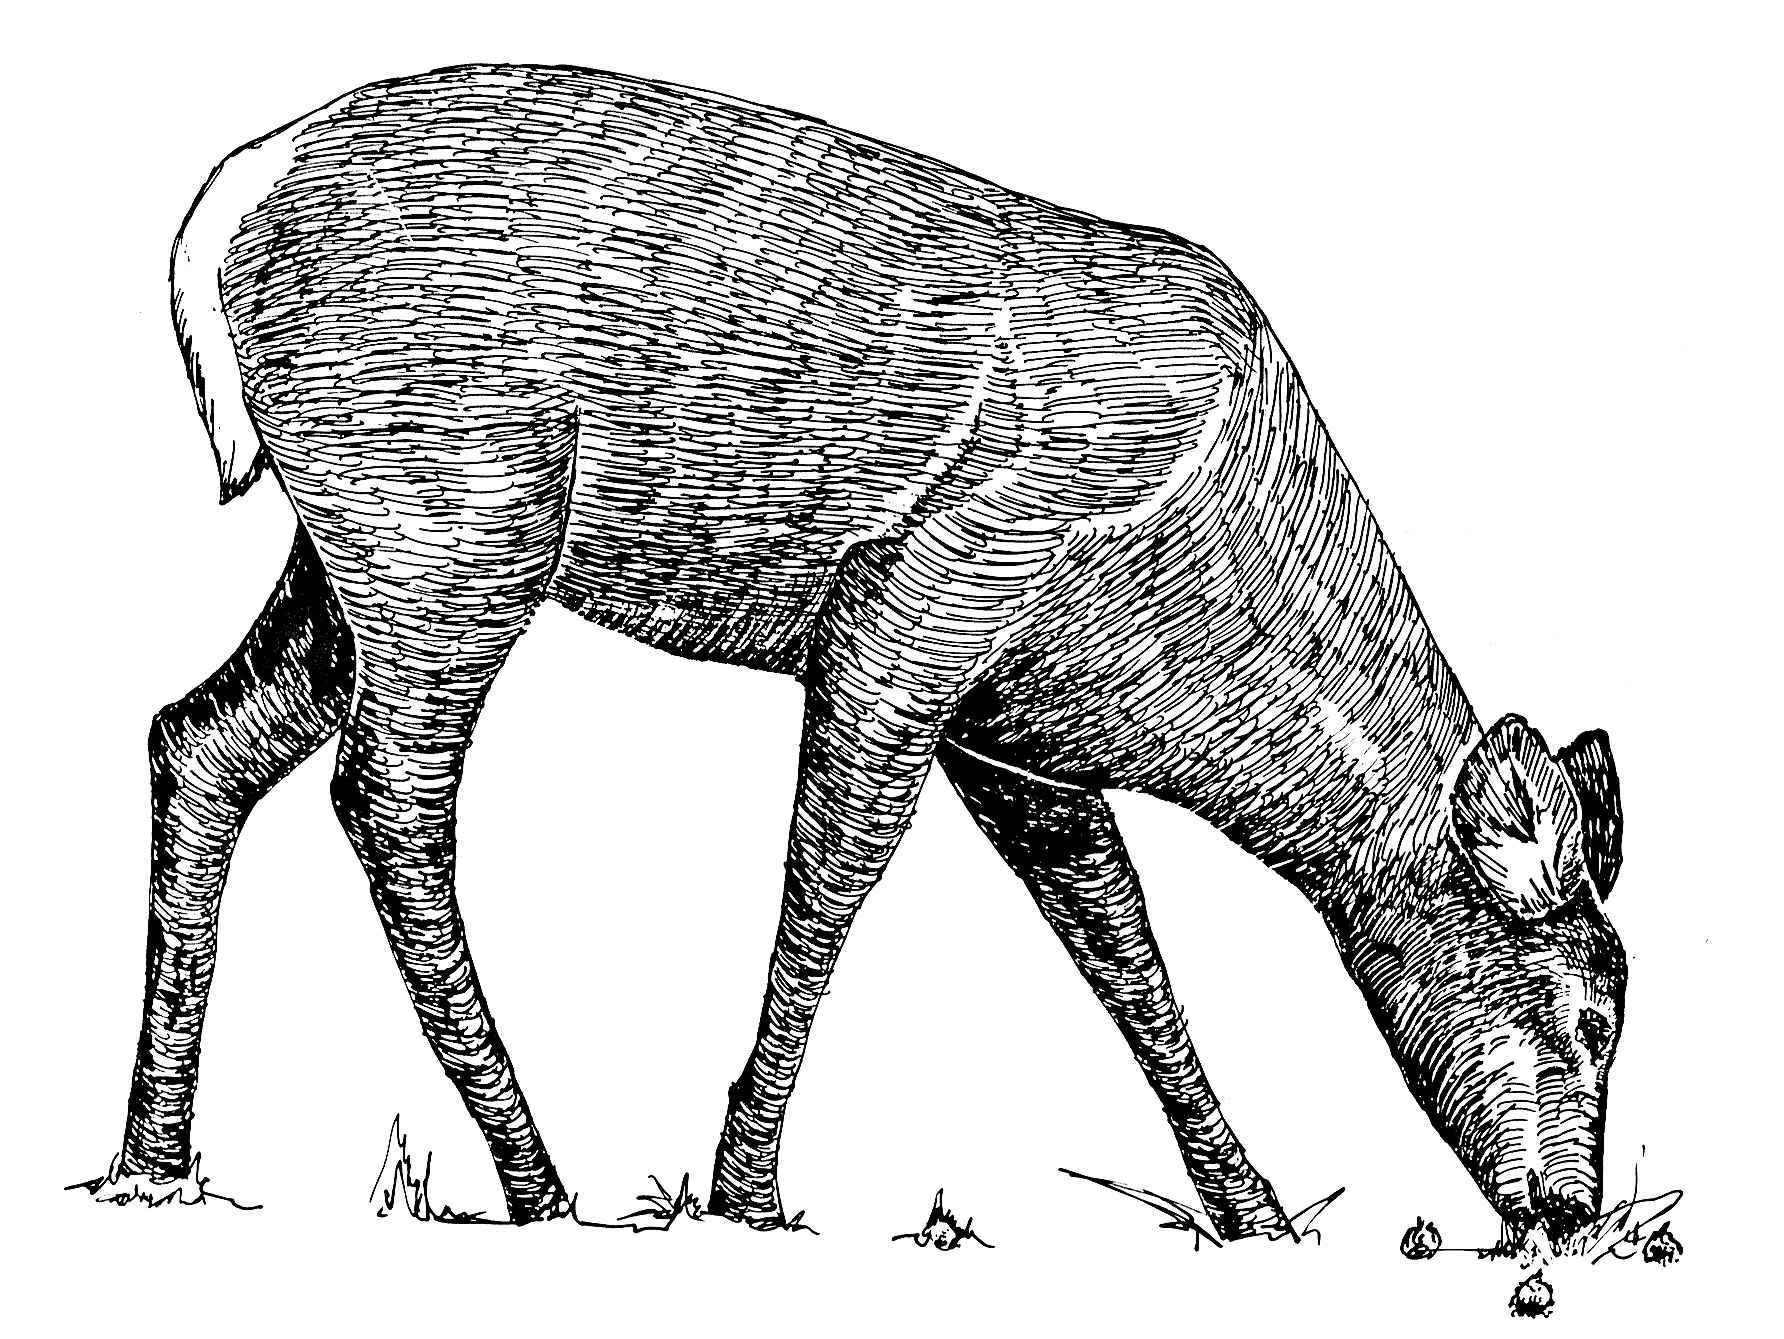 Line Art Drawings Of Animals : File animal line art drawing g wikimedia commons